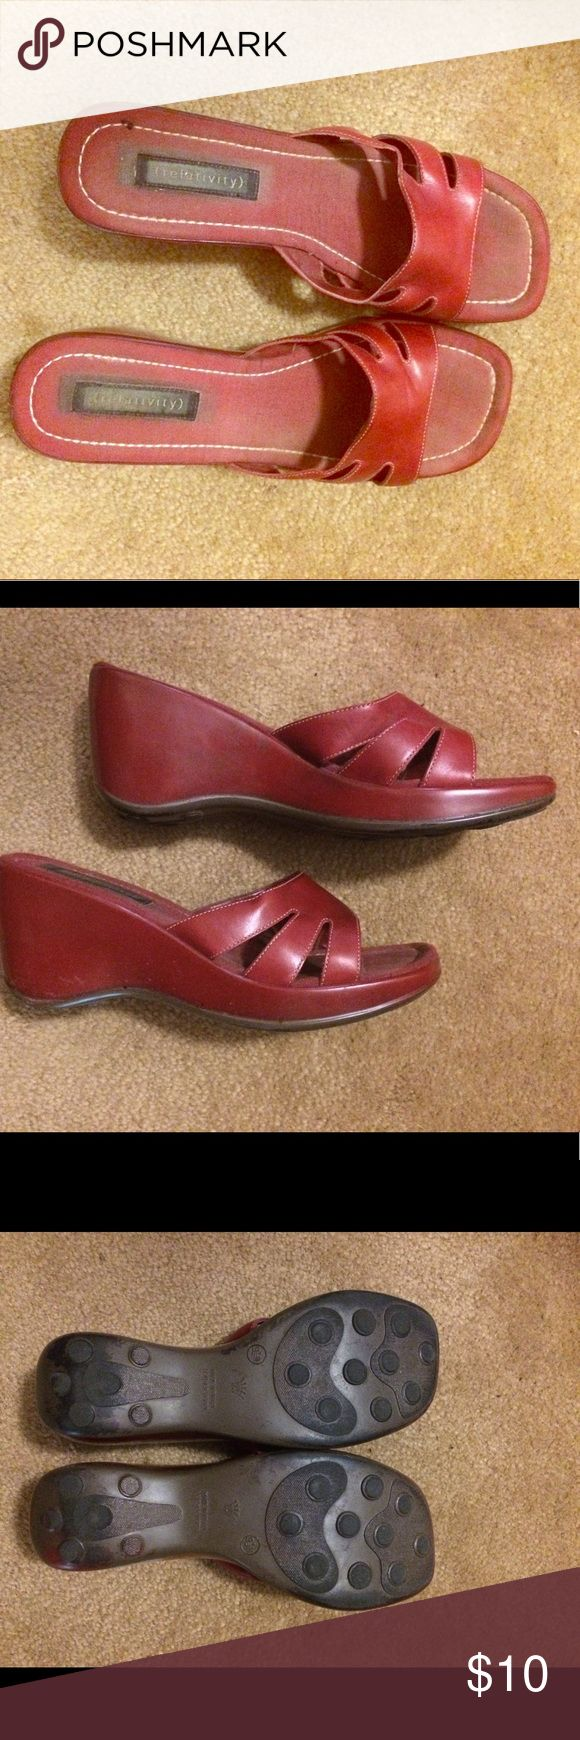 Relativity red wedges Red wedges fro Relativity. Very comfortable. Only worn a half dozen times. Relativity Shoes Wedges